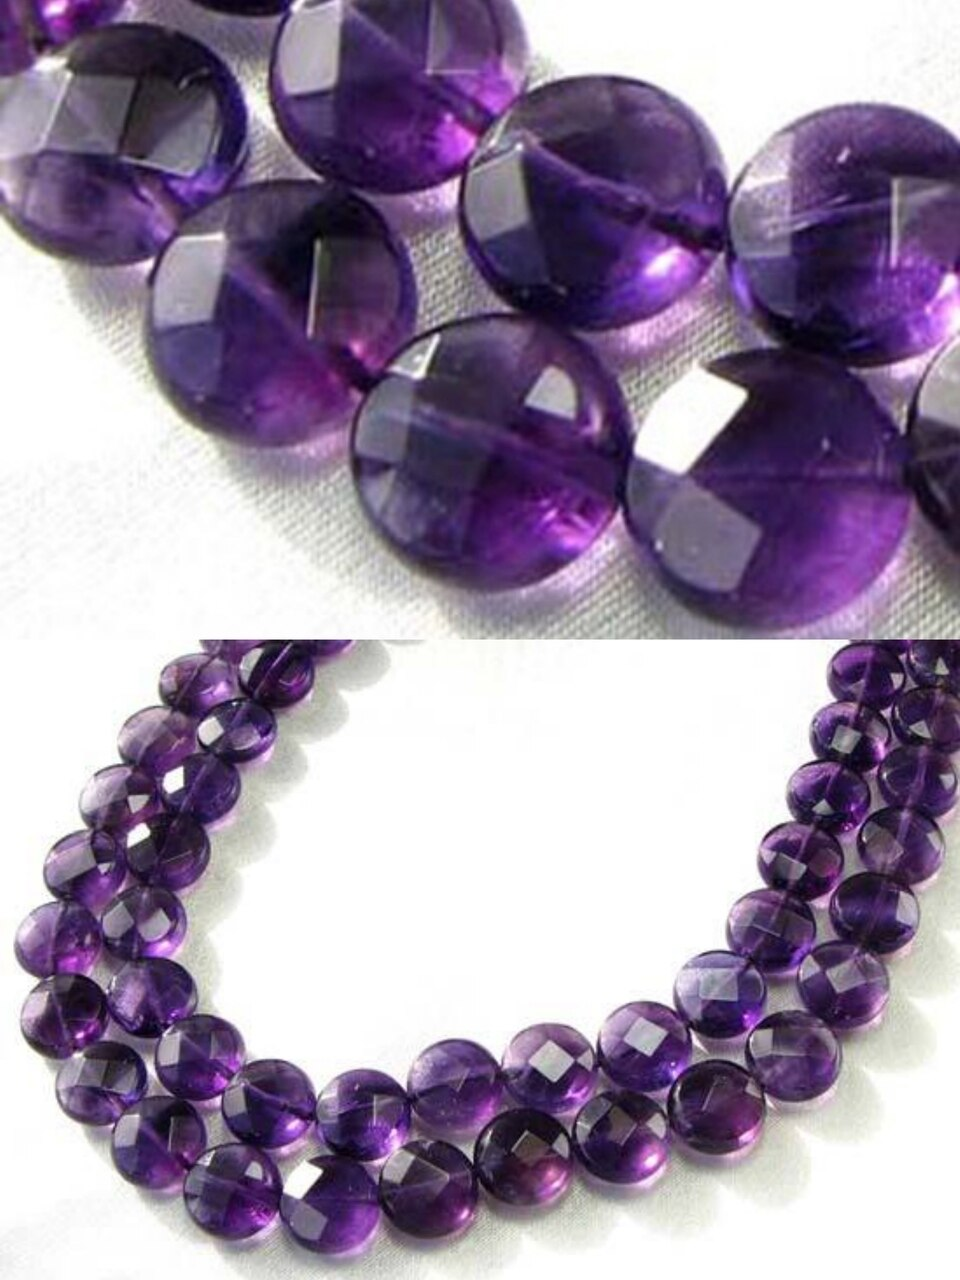 3 Royal Natural 10mm Amethyst Coin 9431 - PremiumBead